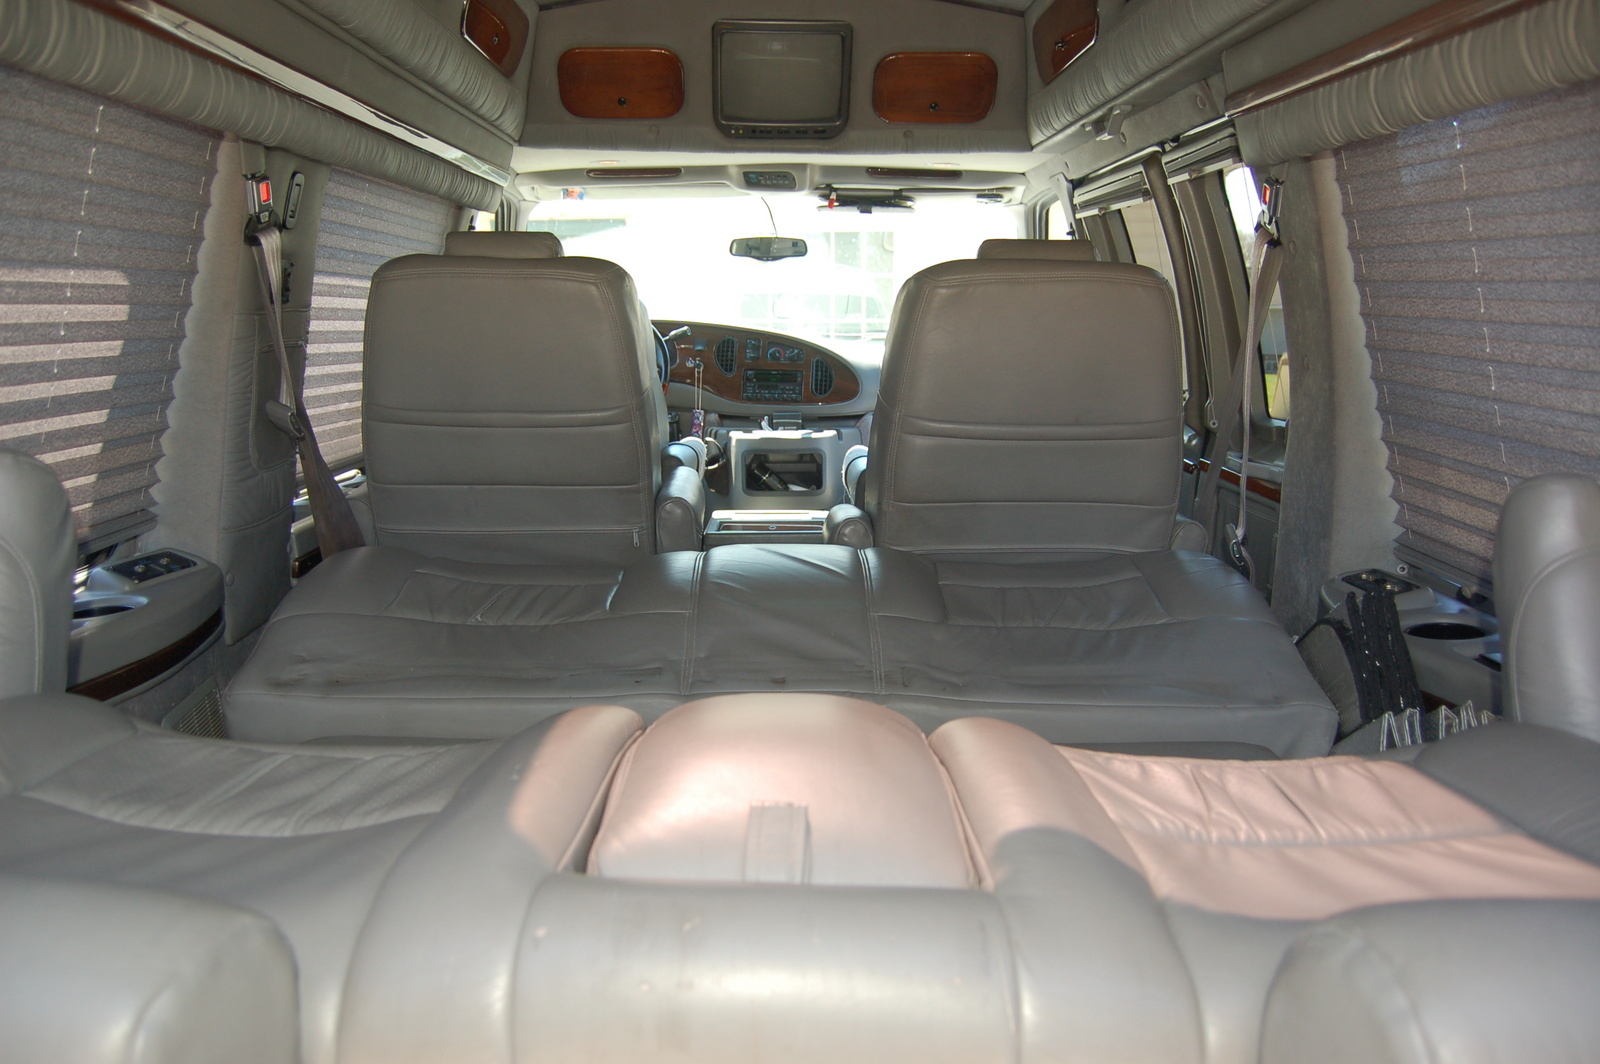 15 passenger van interior pictures to pin on pinterest pinsdaddy. Black Bedroom Furniture Sets. Home Design Ideas